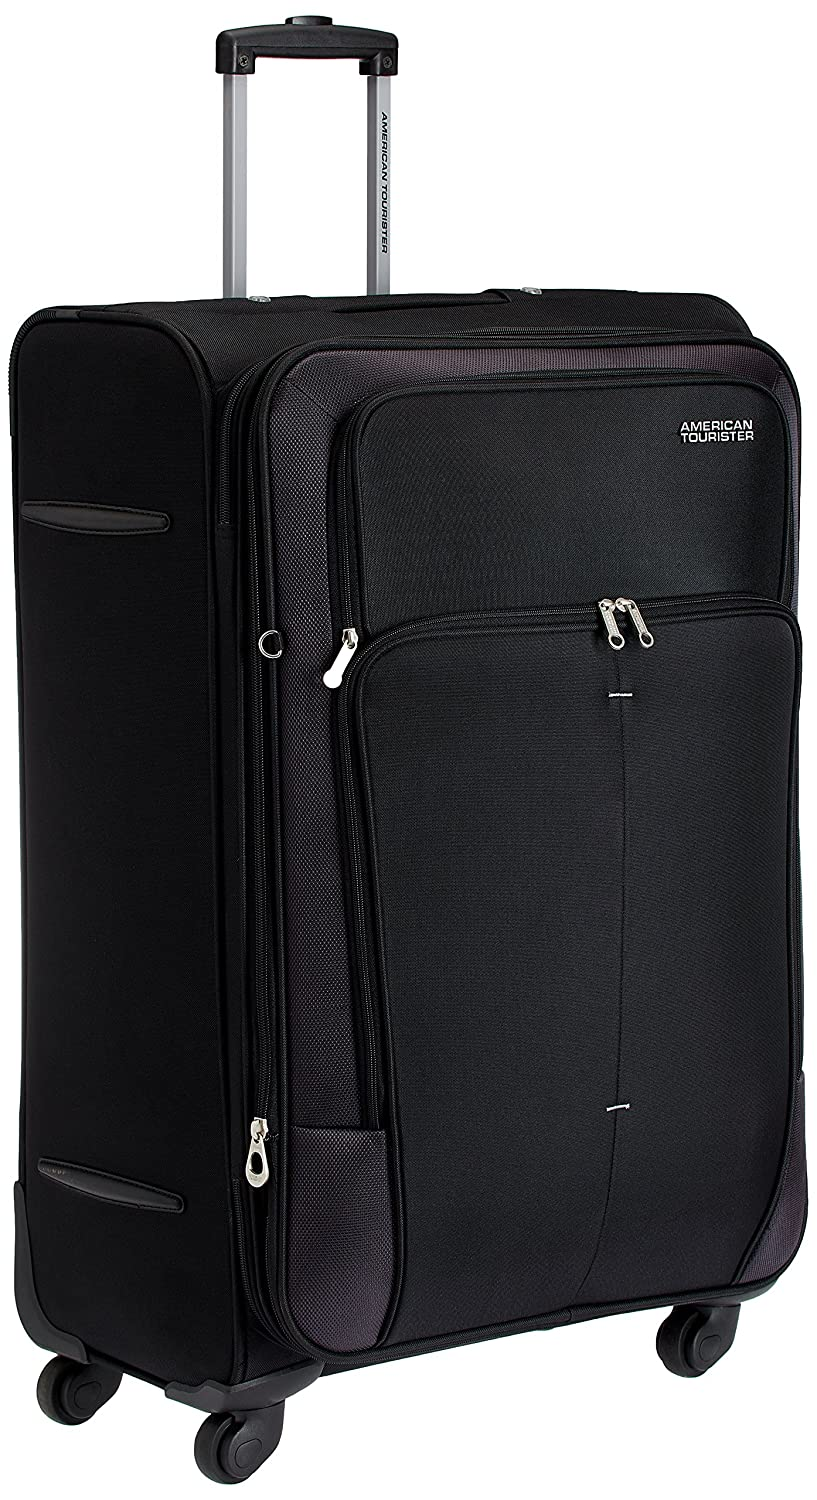 6fbc5783901e American Tourister Crete Polyester 77 cms Black Softsided Check-in Luggage  (49W (0) 09 003)